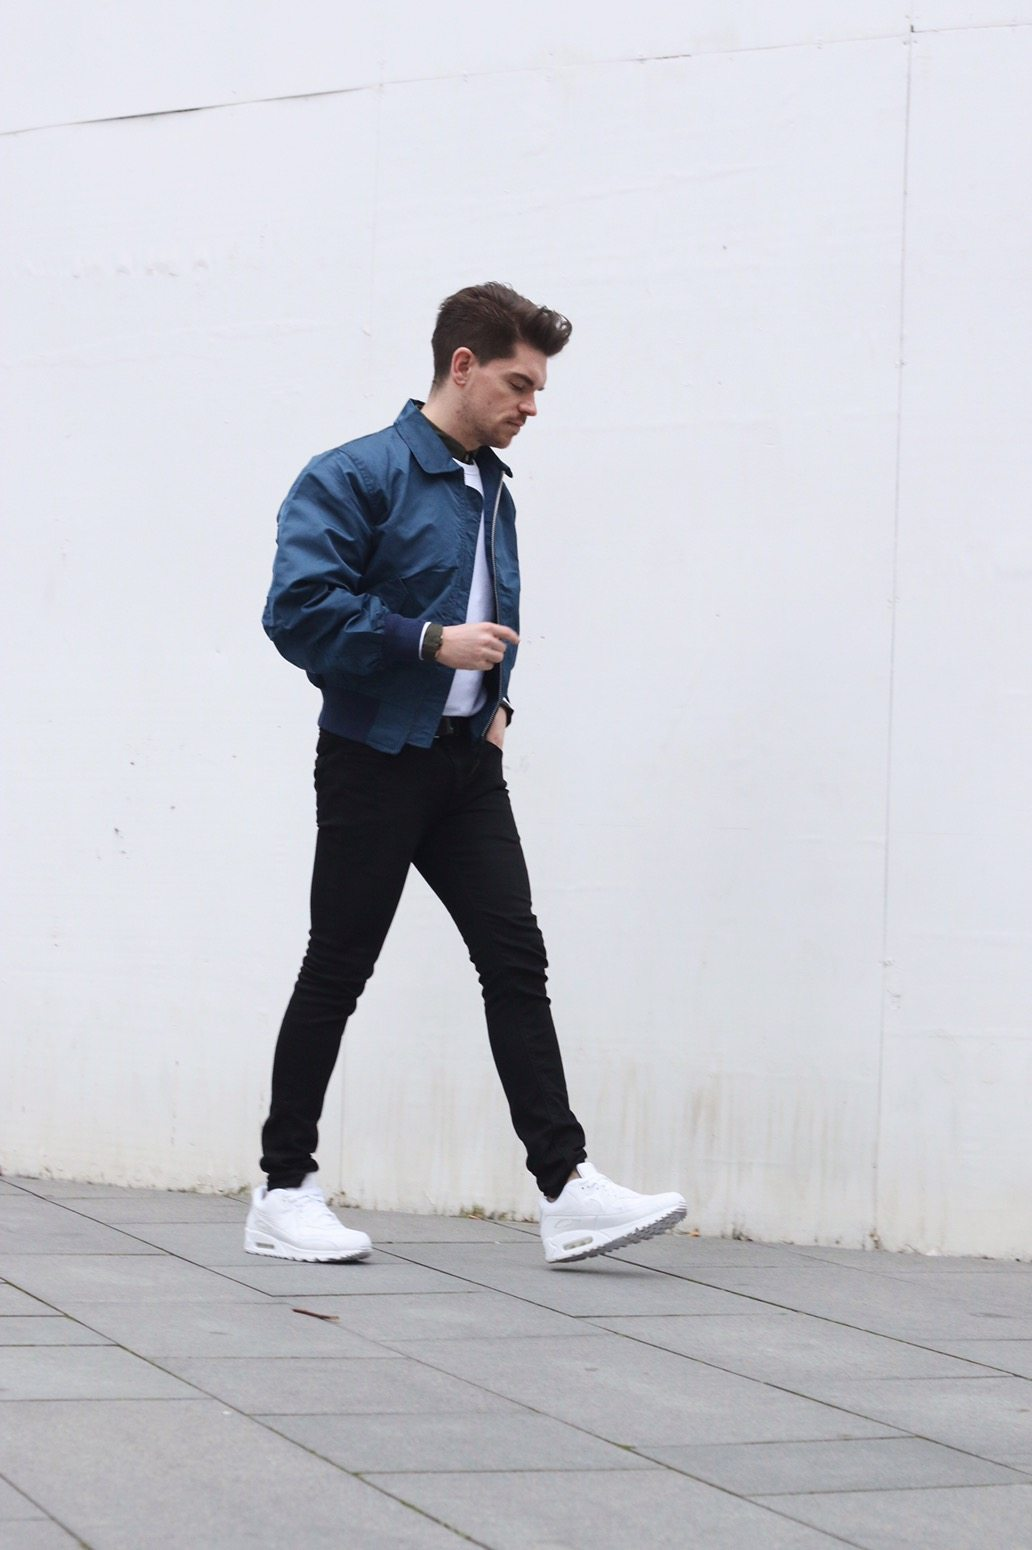 Lightning-Bomber-Jacket-Menswear-Robin-James-Man-For-Himself-1